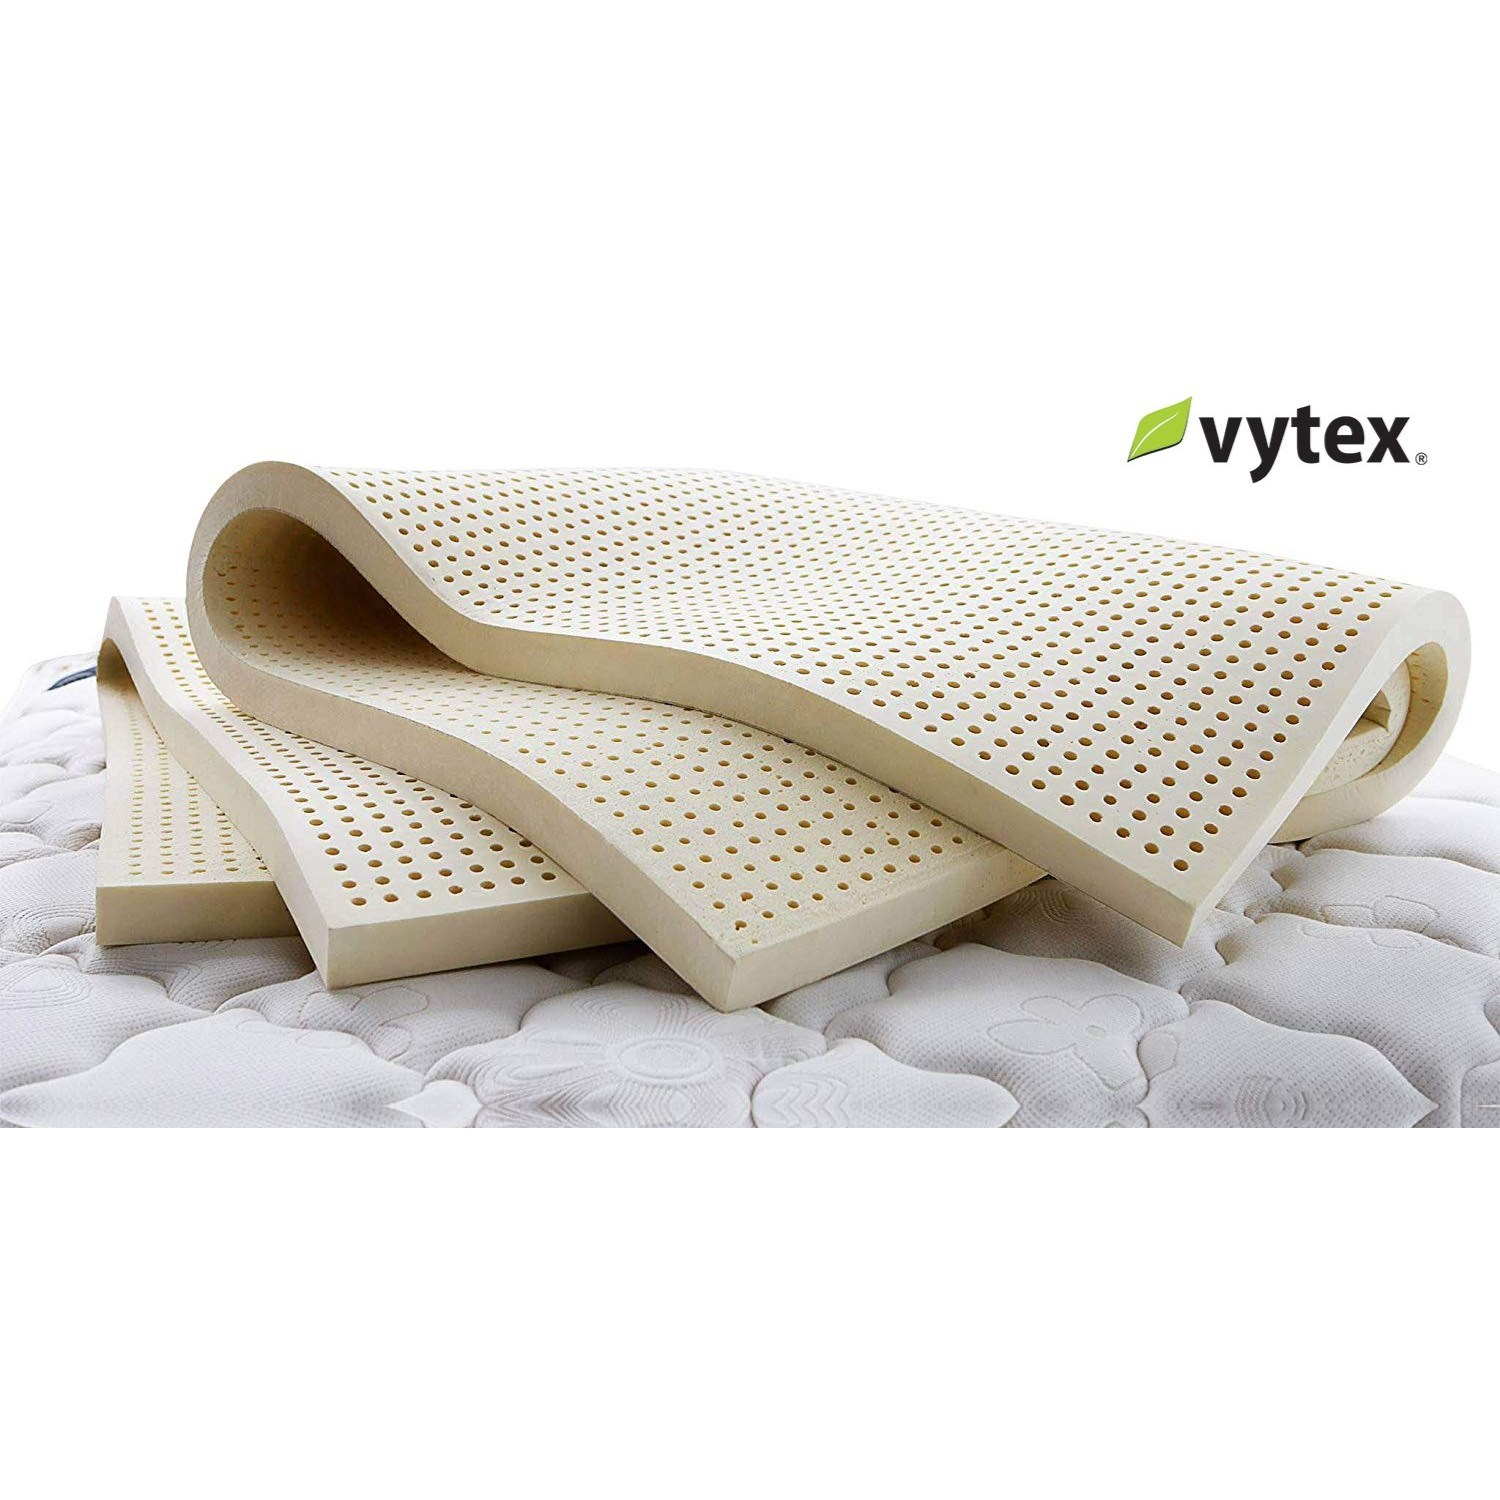 "Vytex Mattress Toppers - Soft King 3"" Soft Latex Mattress Topper by Vytex at Rotmans"